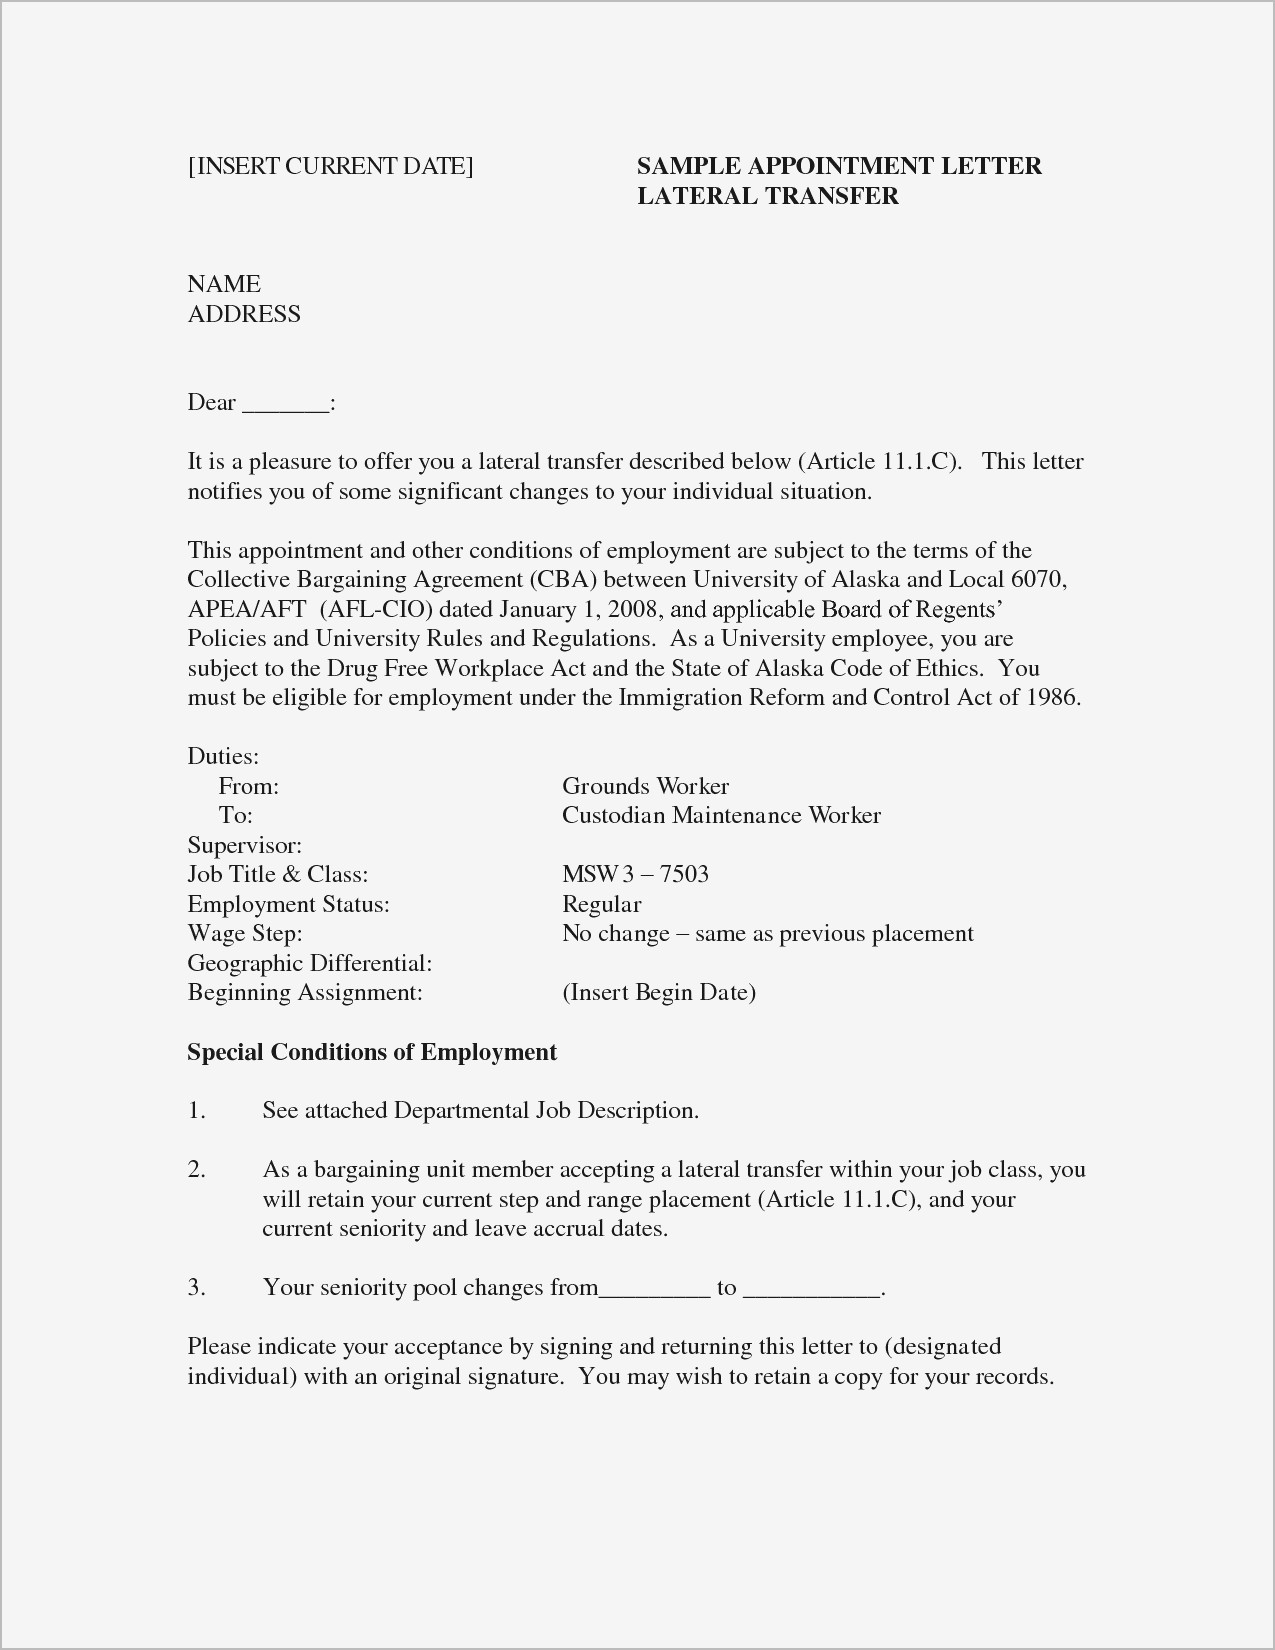 Letter for Job Offer Template - Sample Cover Letter for Job Fer Refrence Job Fer Letter Template